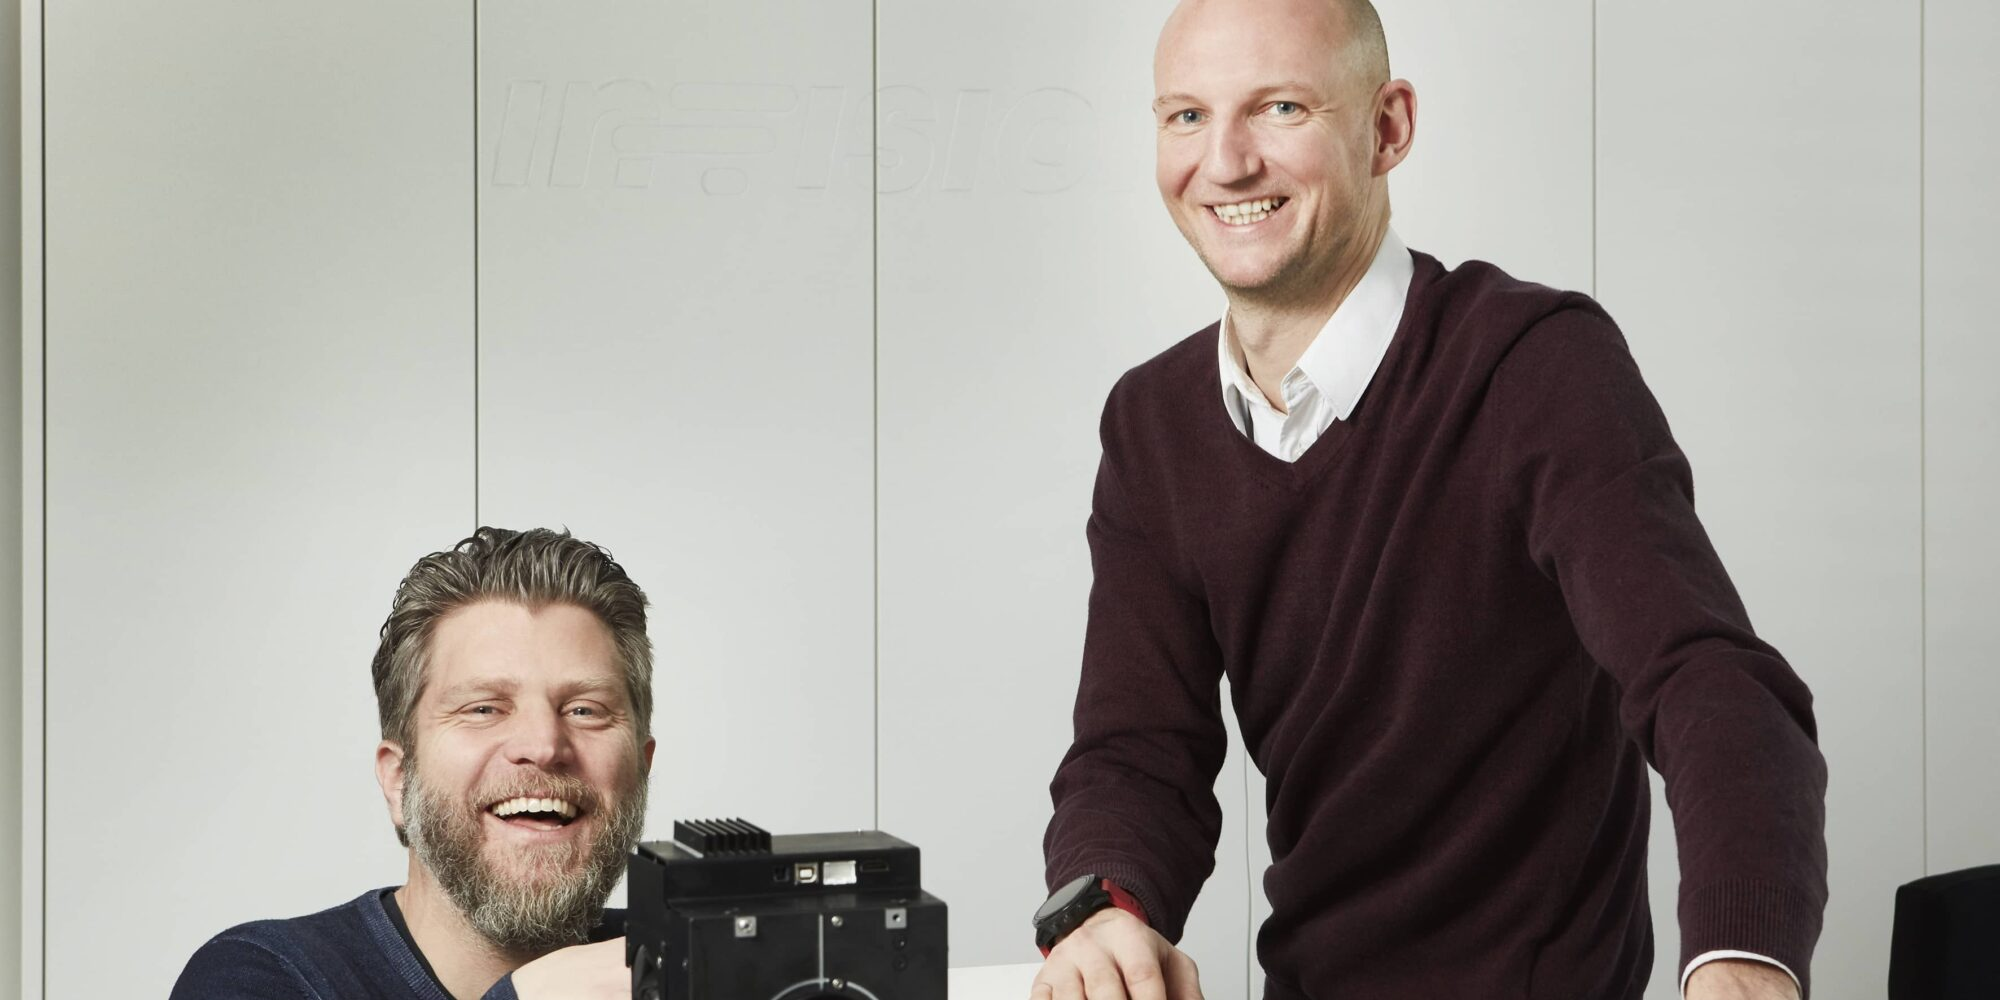 Florian Zangerl (CEO) and Christof Hieger (CTO), In-Vision